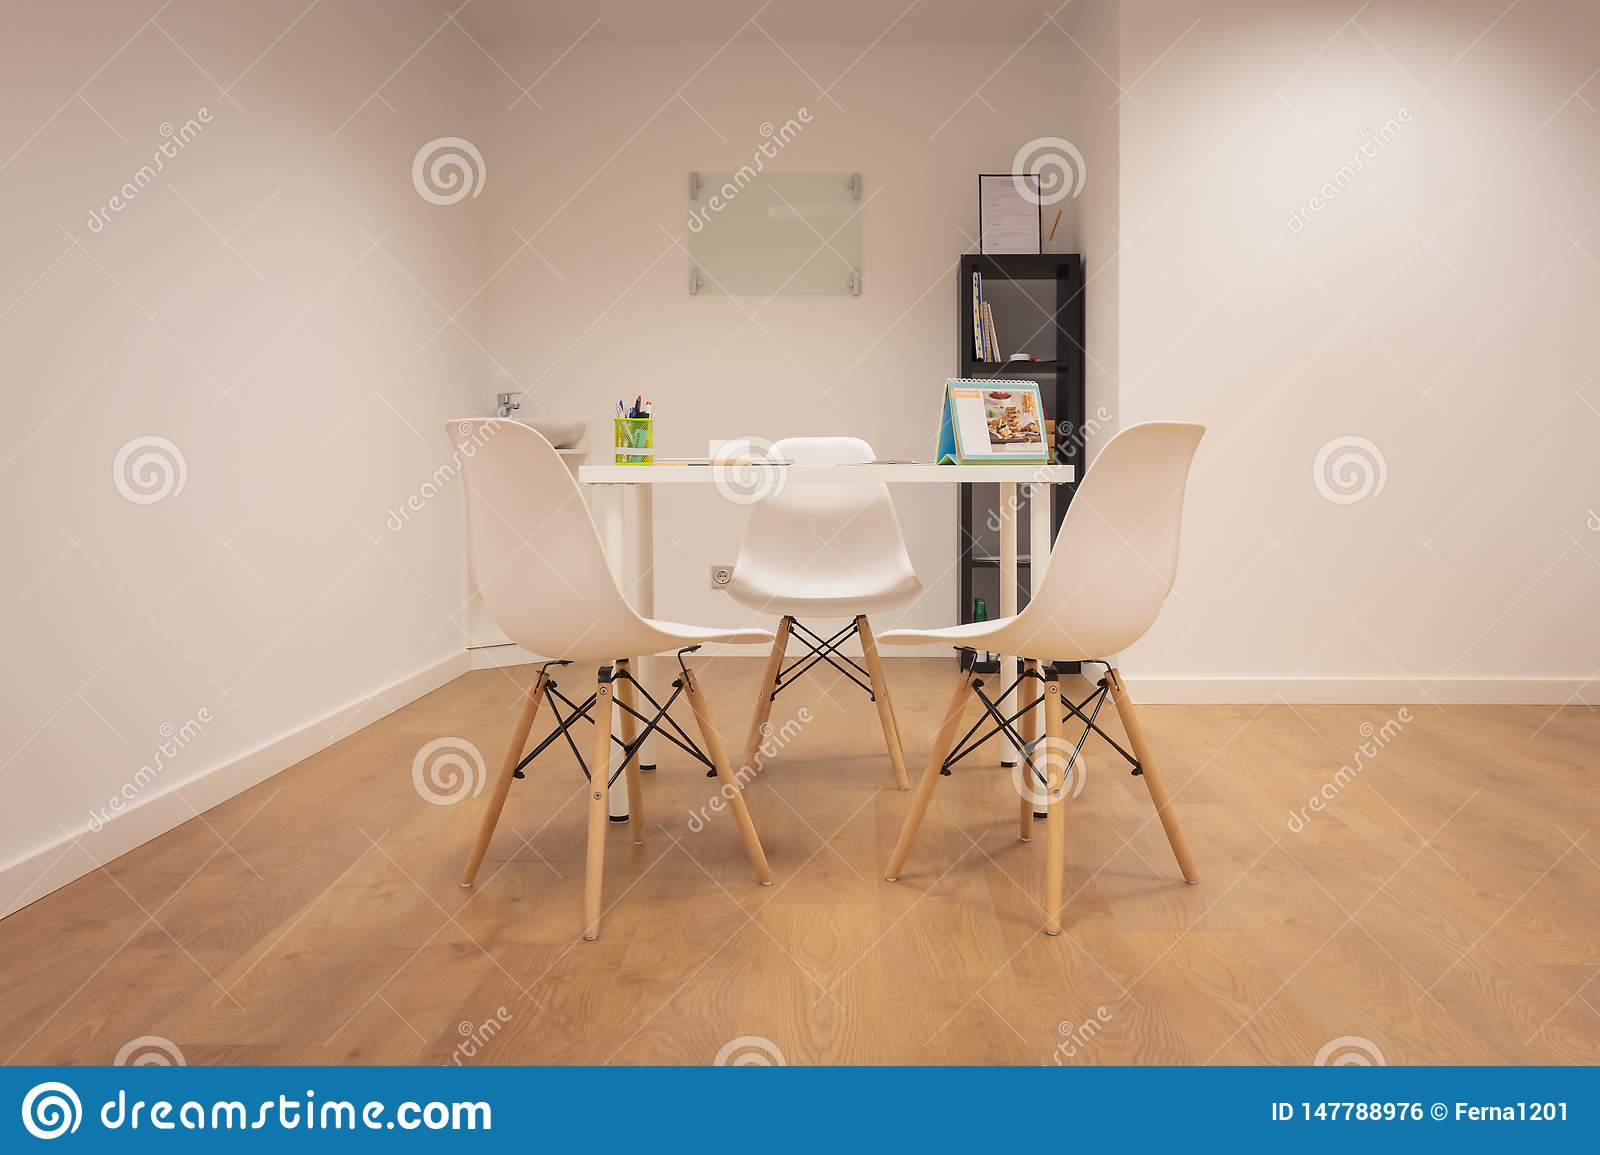 Modern Office Furniture Set With Table And Chairs Interior Of Minimalist Office With White Walls Wooden Floor Wooden And White Stock Photo Image Of Floor Chief 147788976